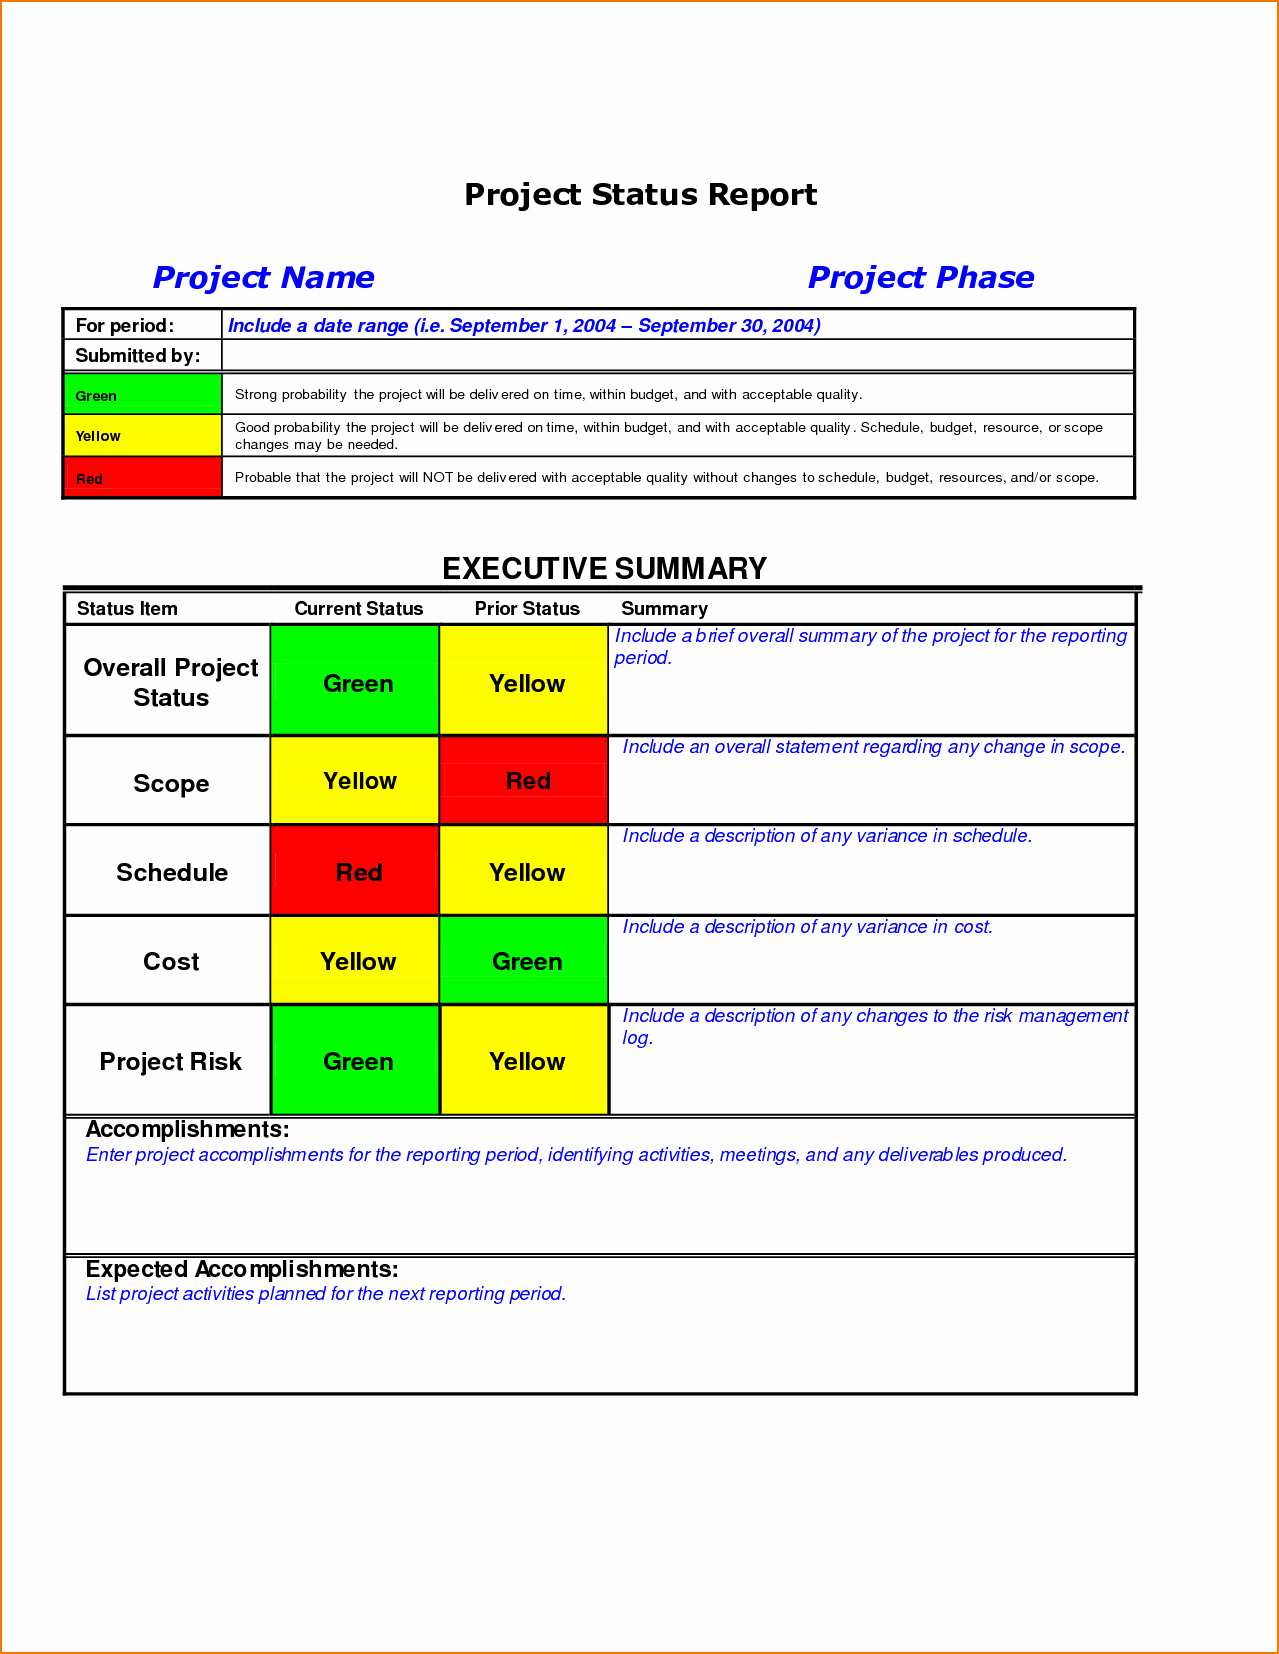 Project Status Report Template New Project Management Status Report Template to Pin